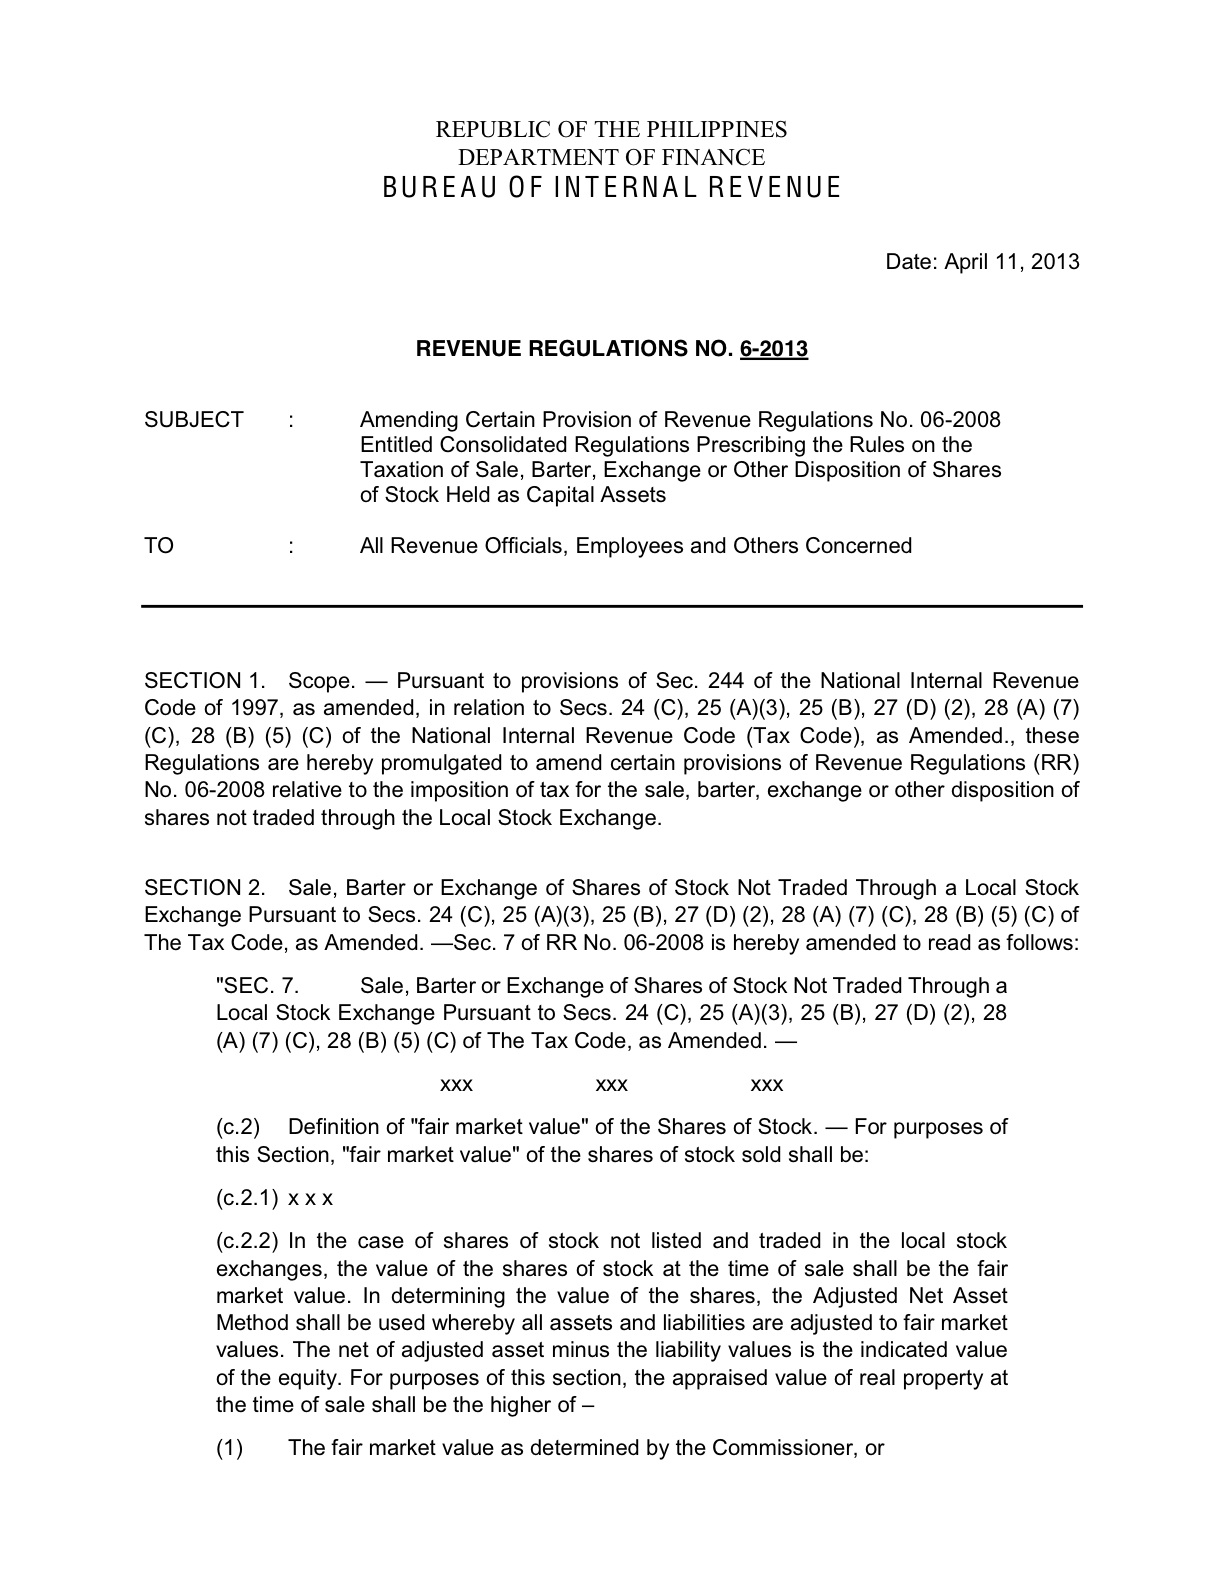 revenue regulations ph Tax bulletin february 2016 2 tax bulletin highlights bir rulings • under the inventors and inventions incentives act of the philippines, inventors are exempt from income tax on the sale of the invented products for the first 10  • revenue regulations (rr) no 1-2016 amends the rules in rr no 3-2005 on.